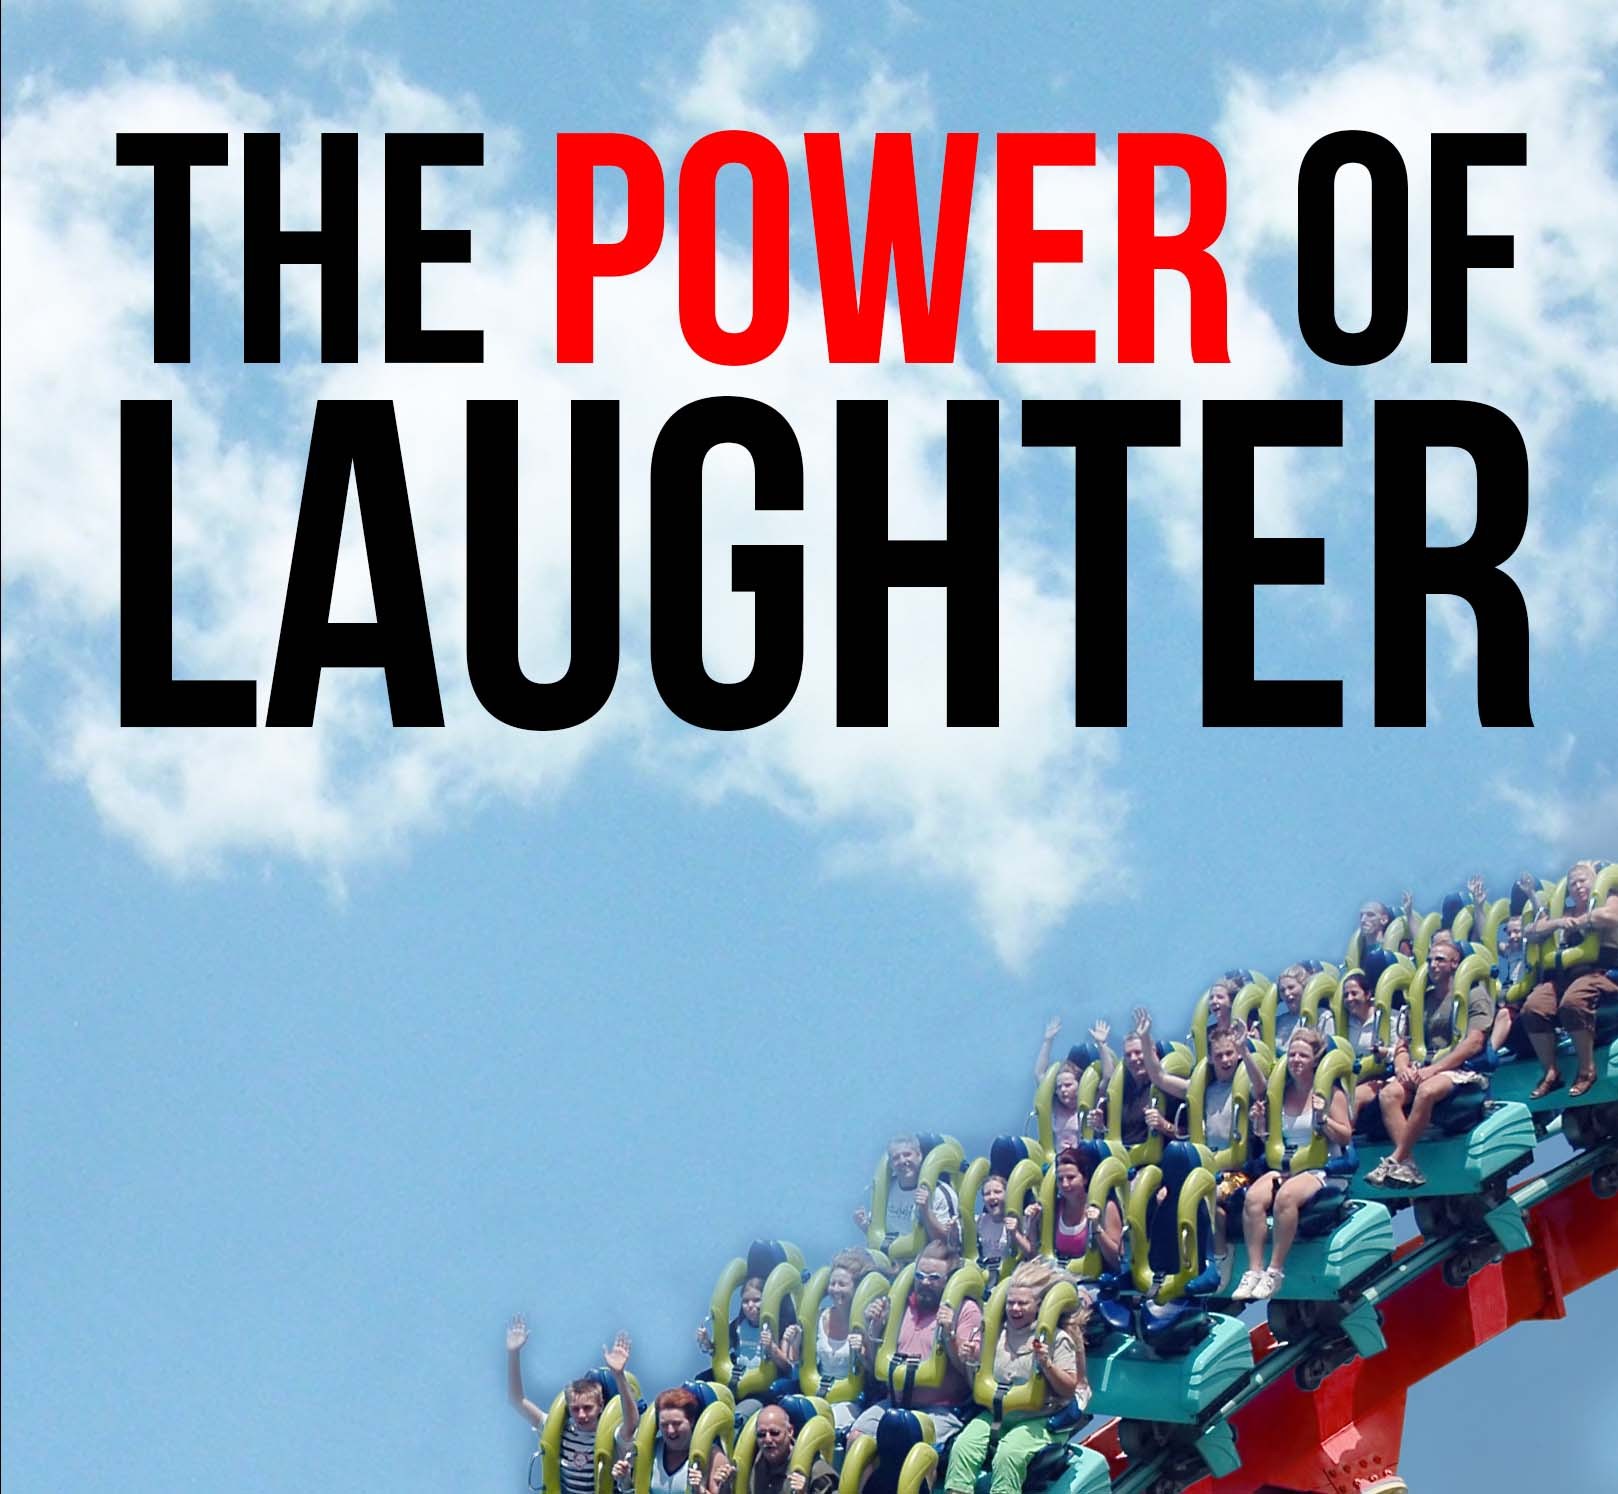 Carla Rieger Square Power Of Laughter Book Cover